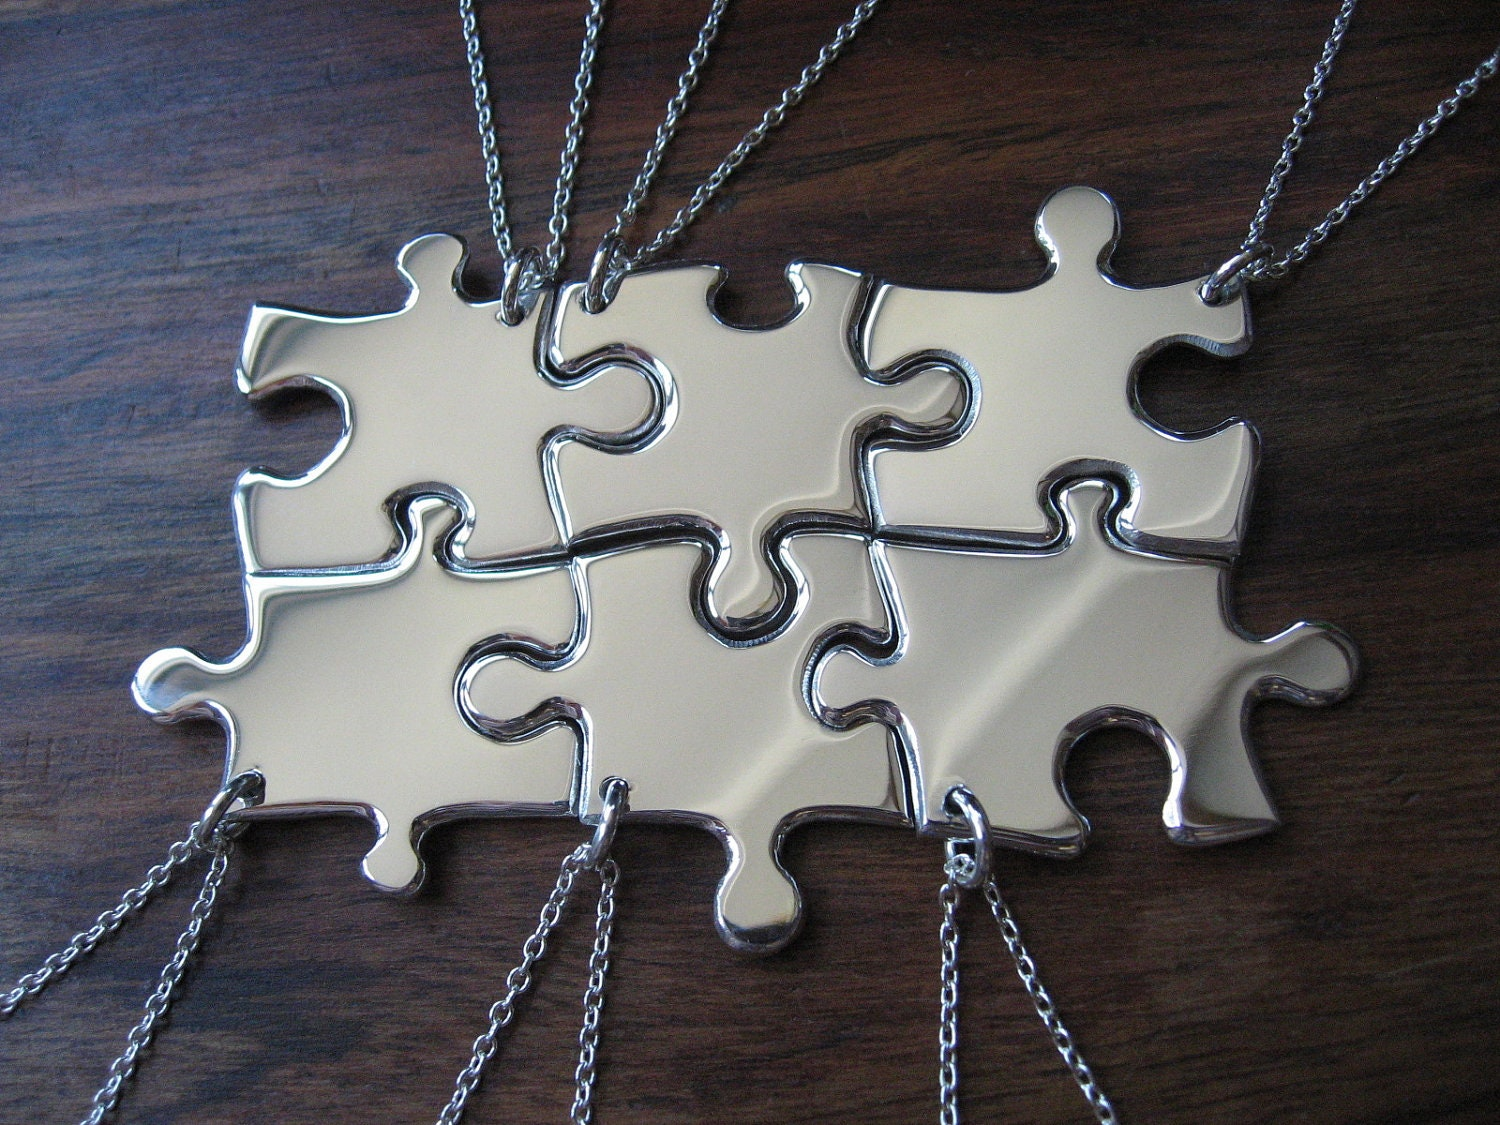 rose jigsaw piece deyong by necklaces image plated puzzle silver gold david necklace amp sterling